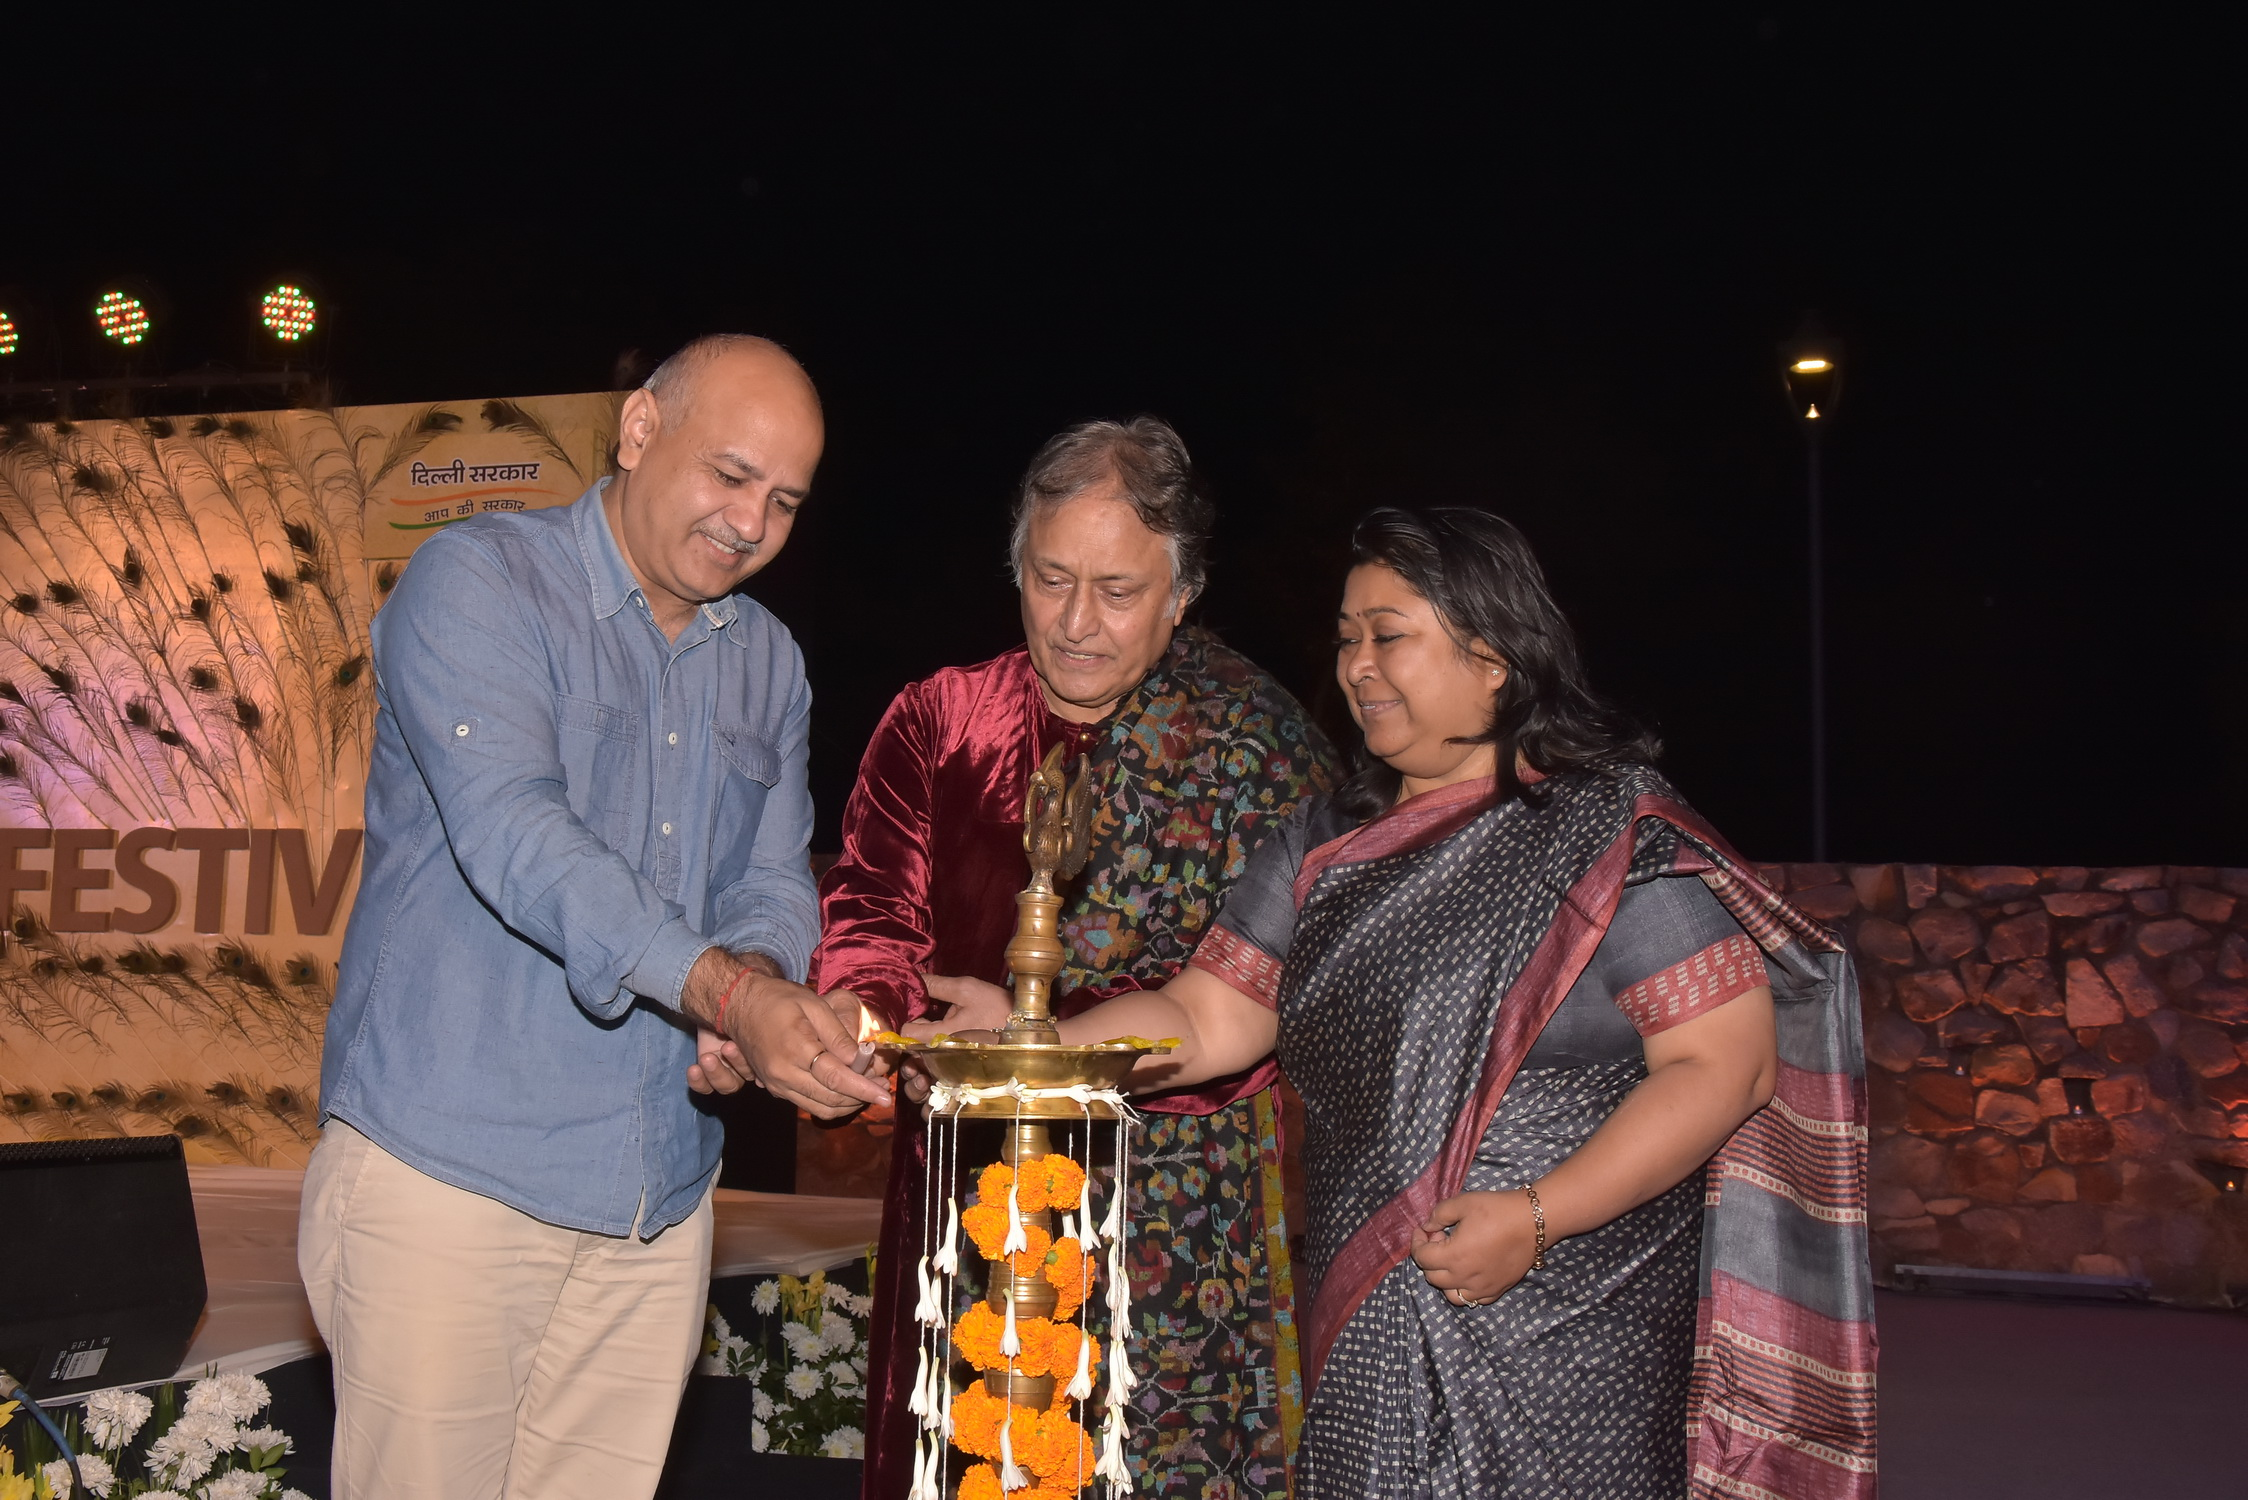 DELHI CLASSICAL MUSIC FESTIVAL CELEBRATED THE LAST DAY WITH SUR AND TAAL